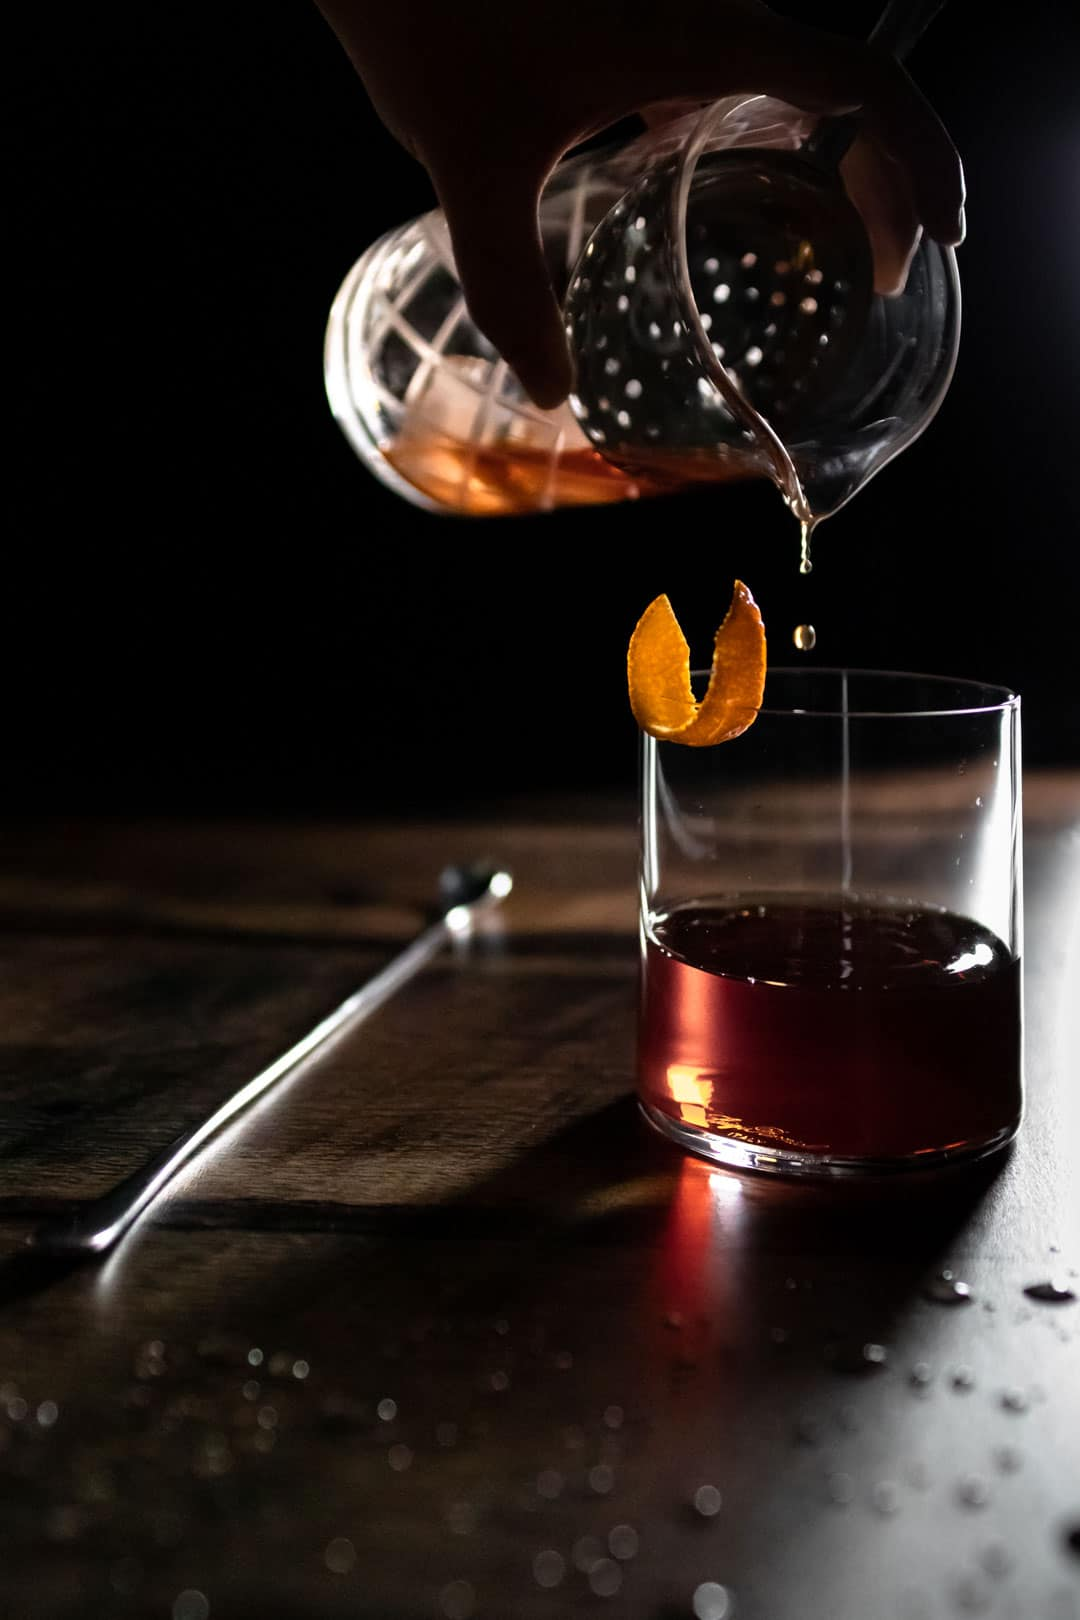 amaro old fashioned being poured into glass